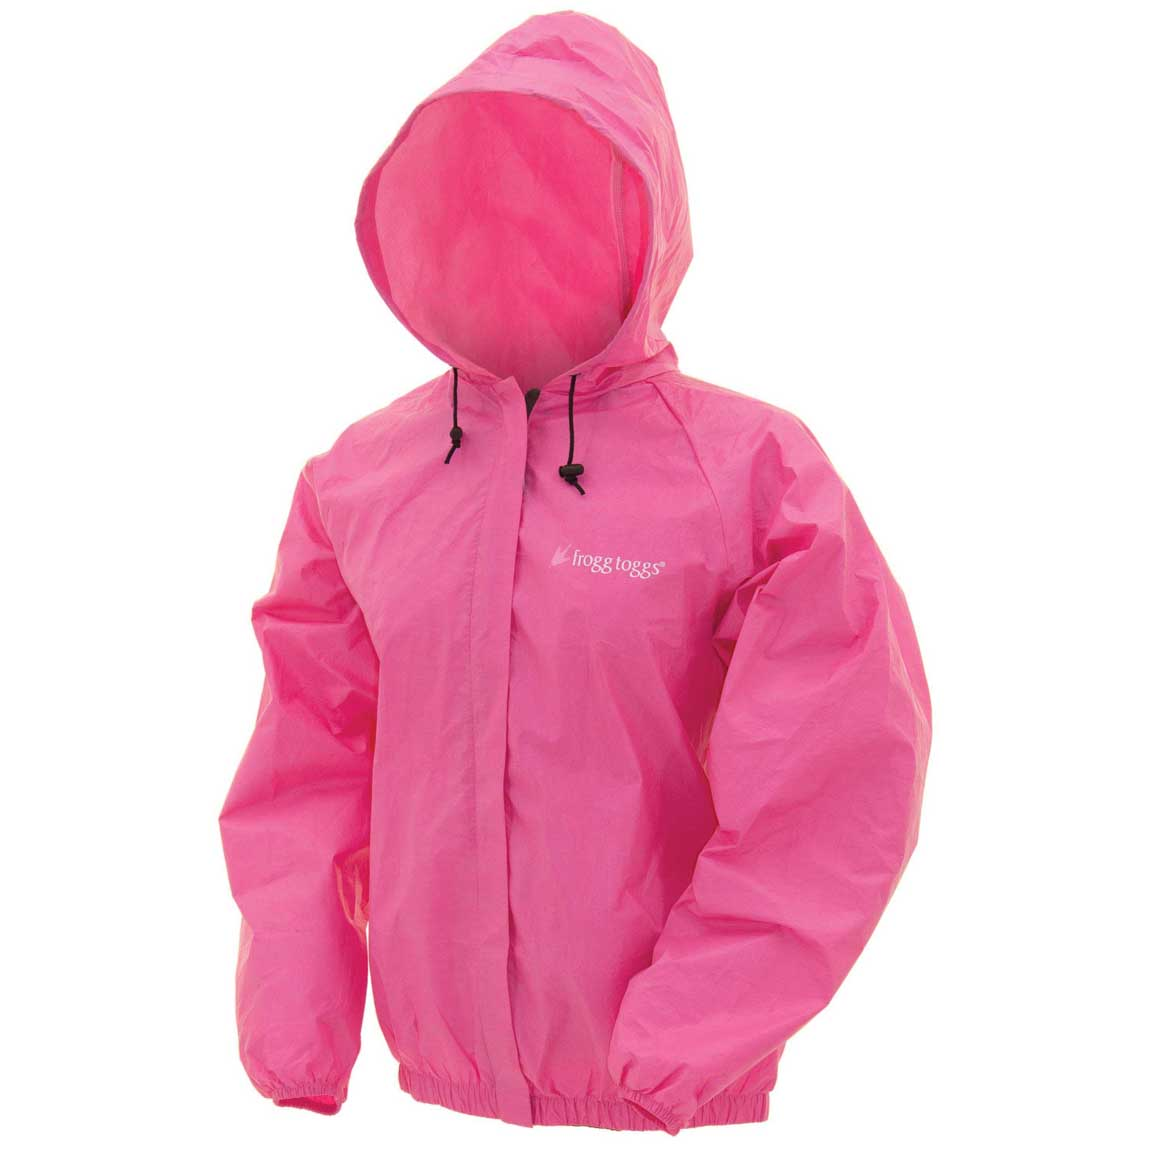 Frogg Toggs Women's Ultra-Lite2 Jacket, Pink